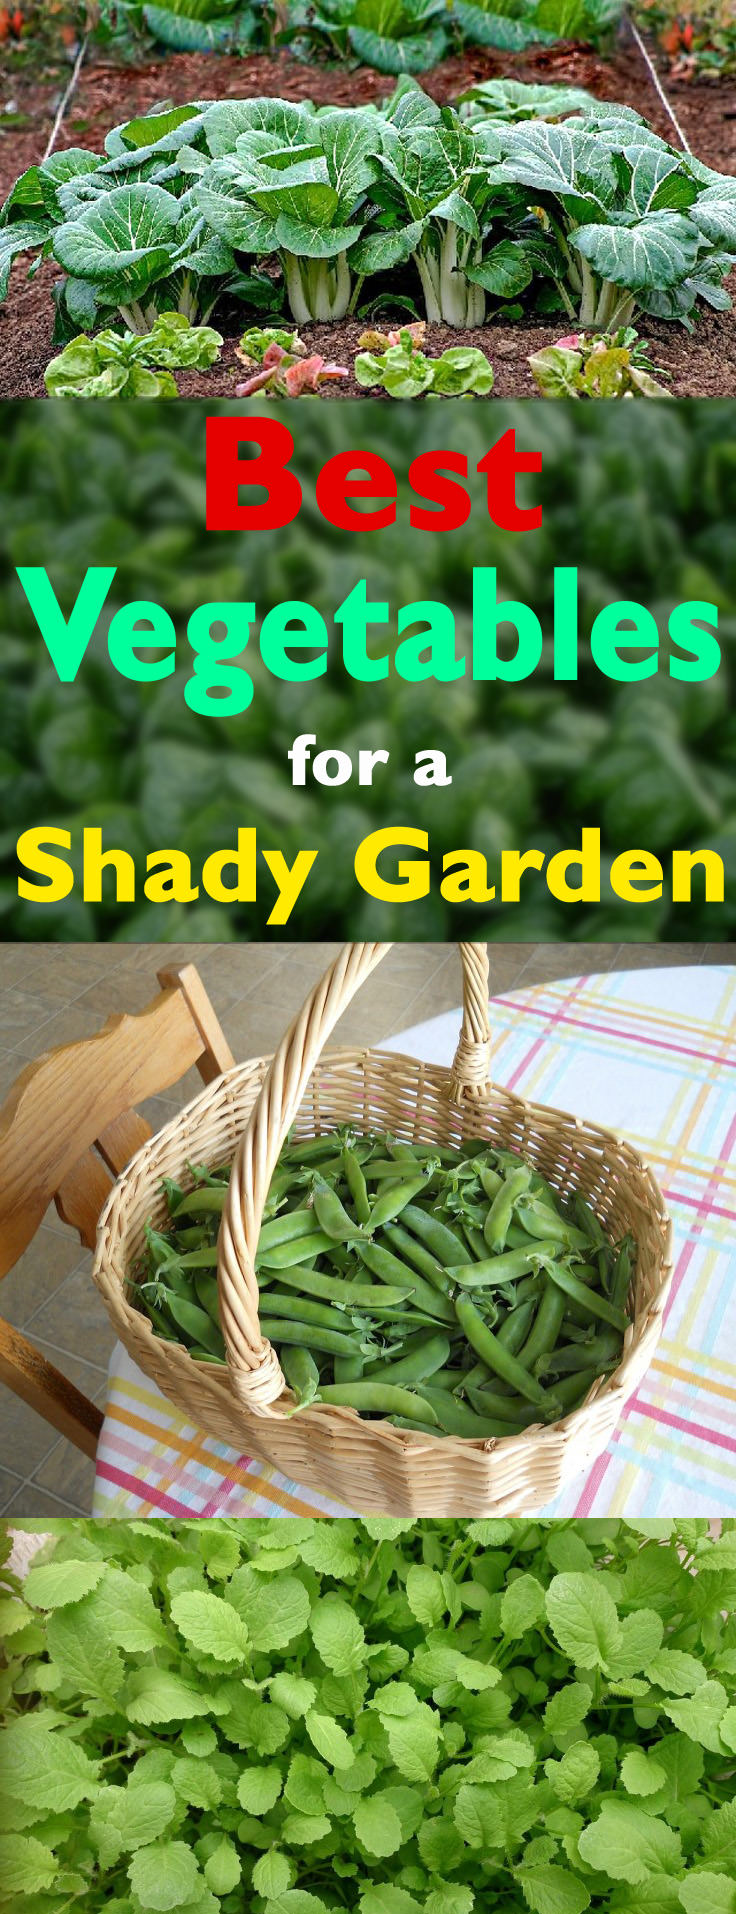 Ten Top Tips For Small Shady Urban Gardens: Best Vegetables For Shady Garden